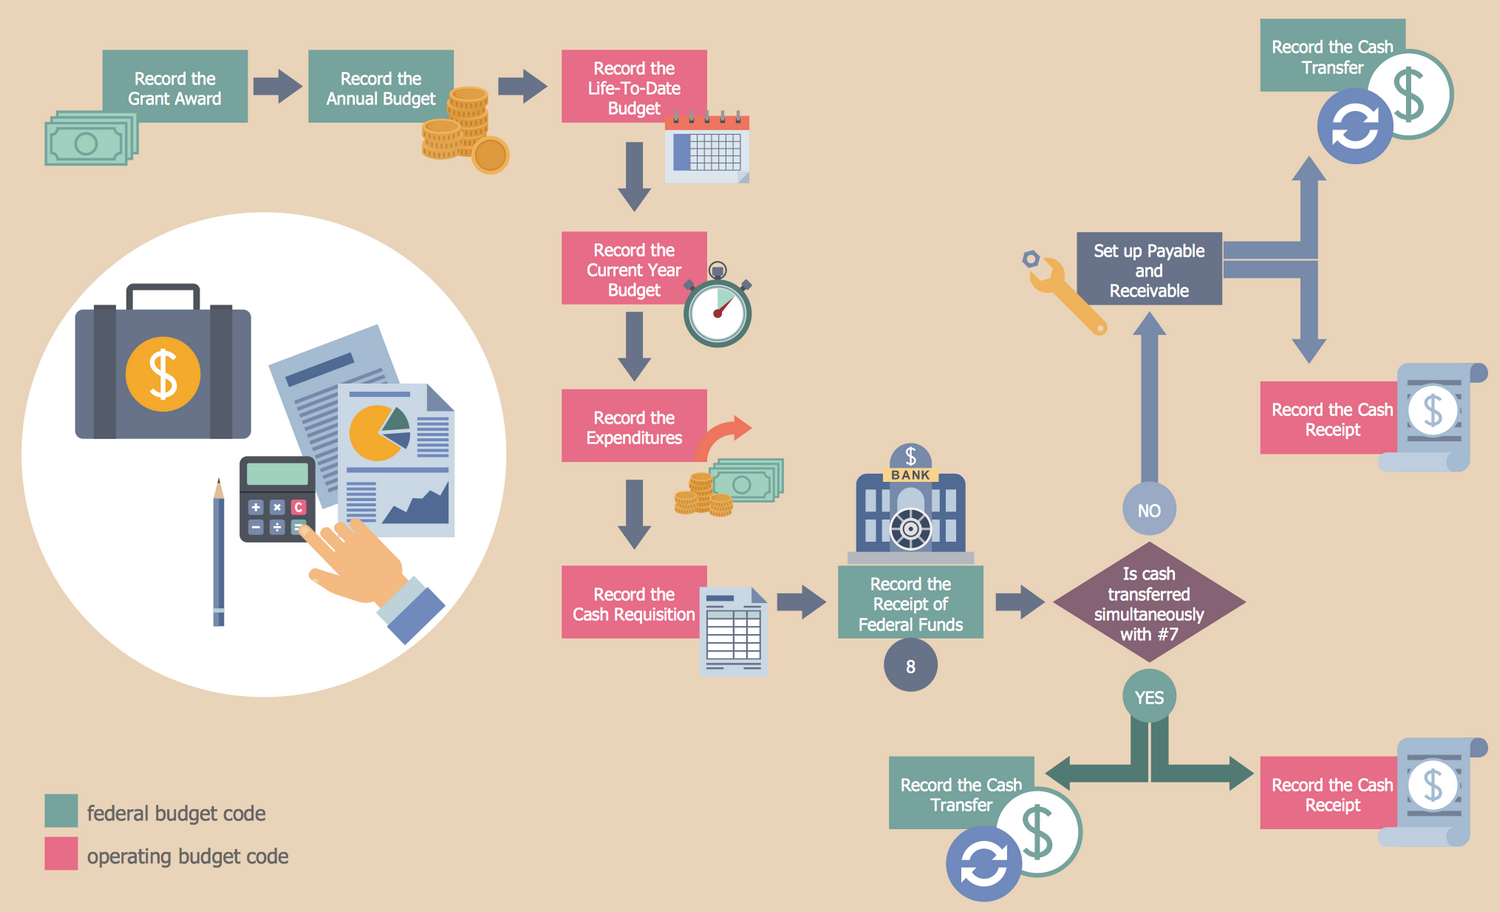 Business Process Workflow Diagrams Solution | ConceptDraw.com